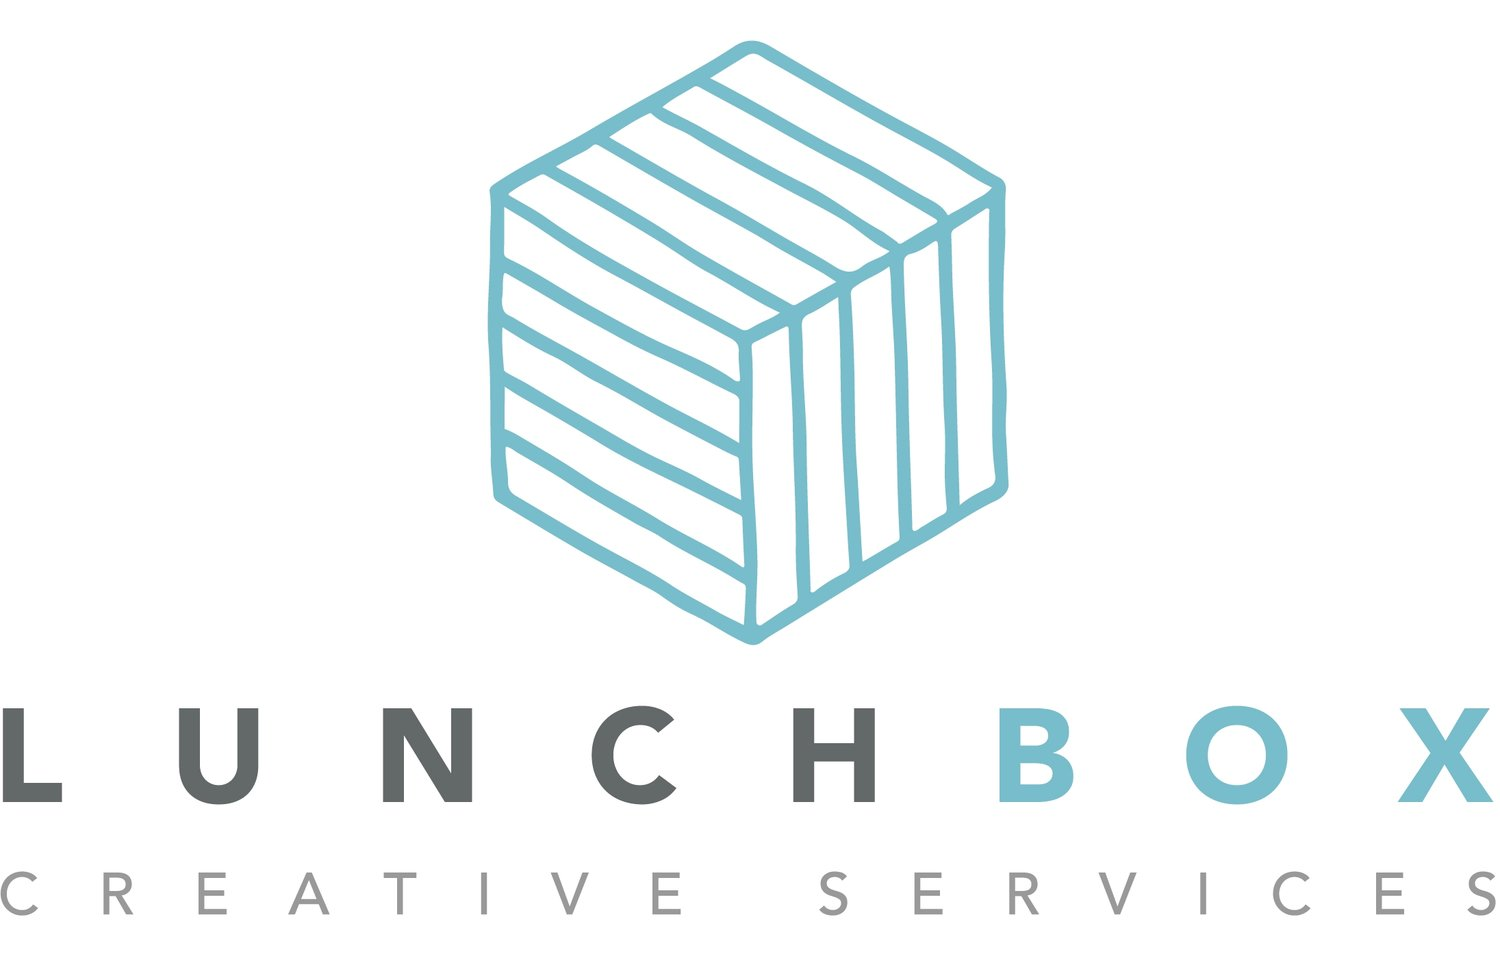 Lunch Box Creative Services